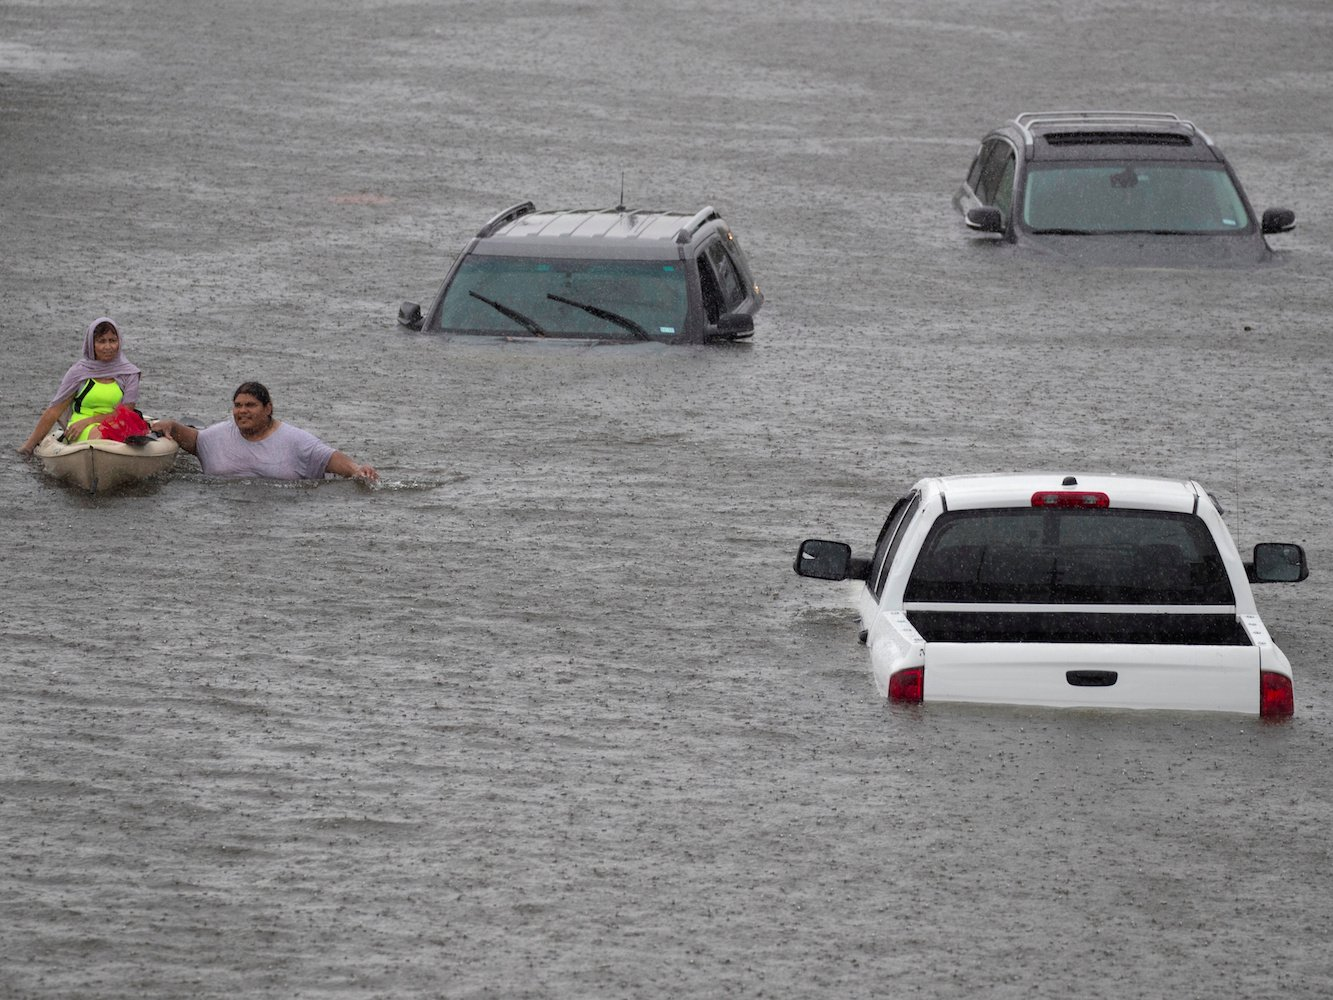 A resident of Houston  (right) rescues a stranded woman (left) from a flooded area.